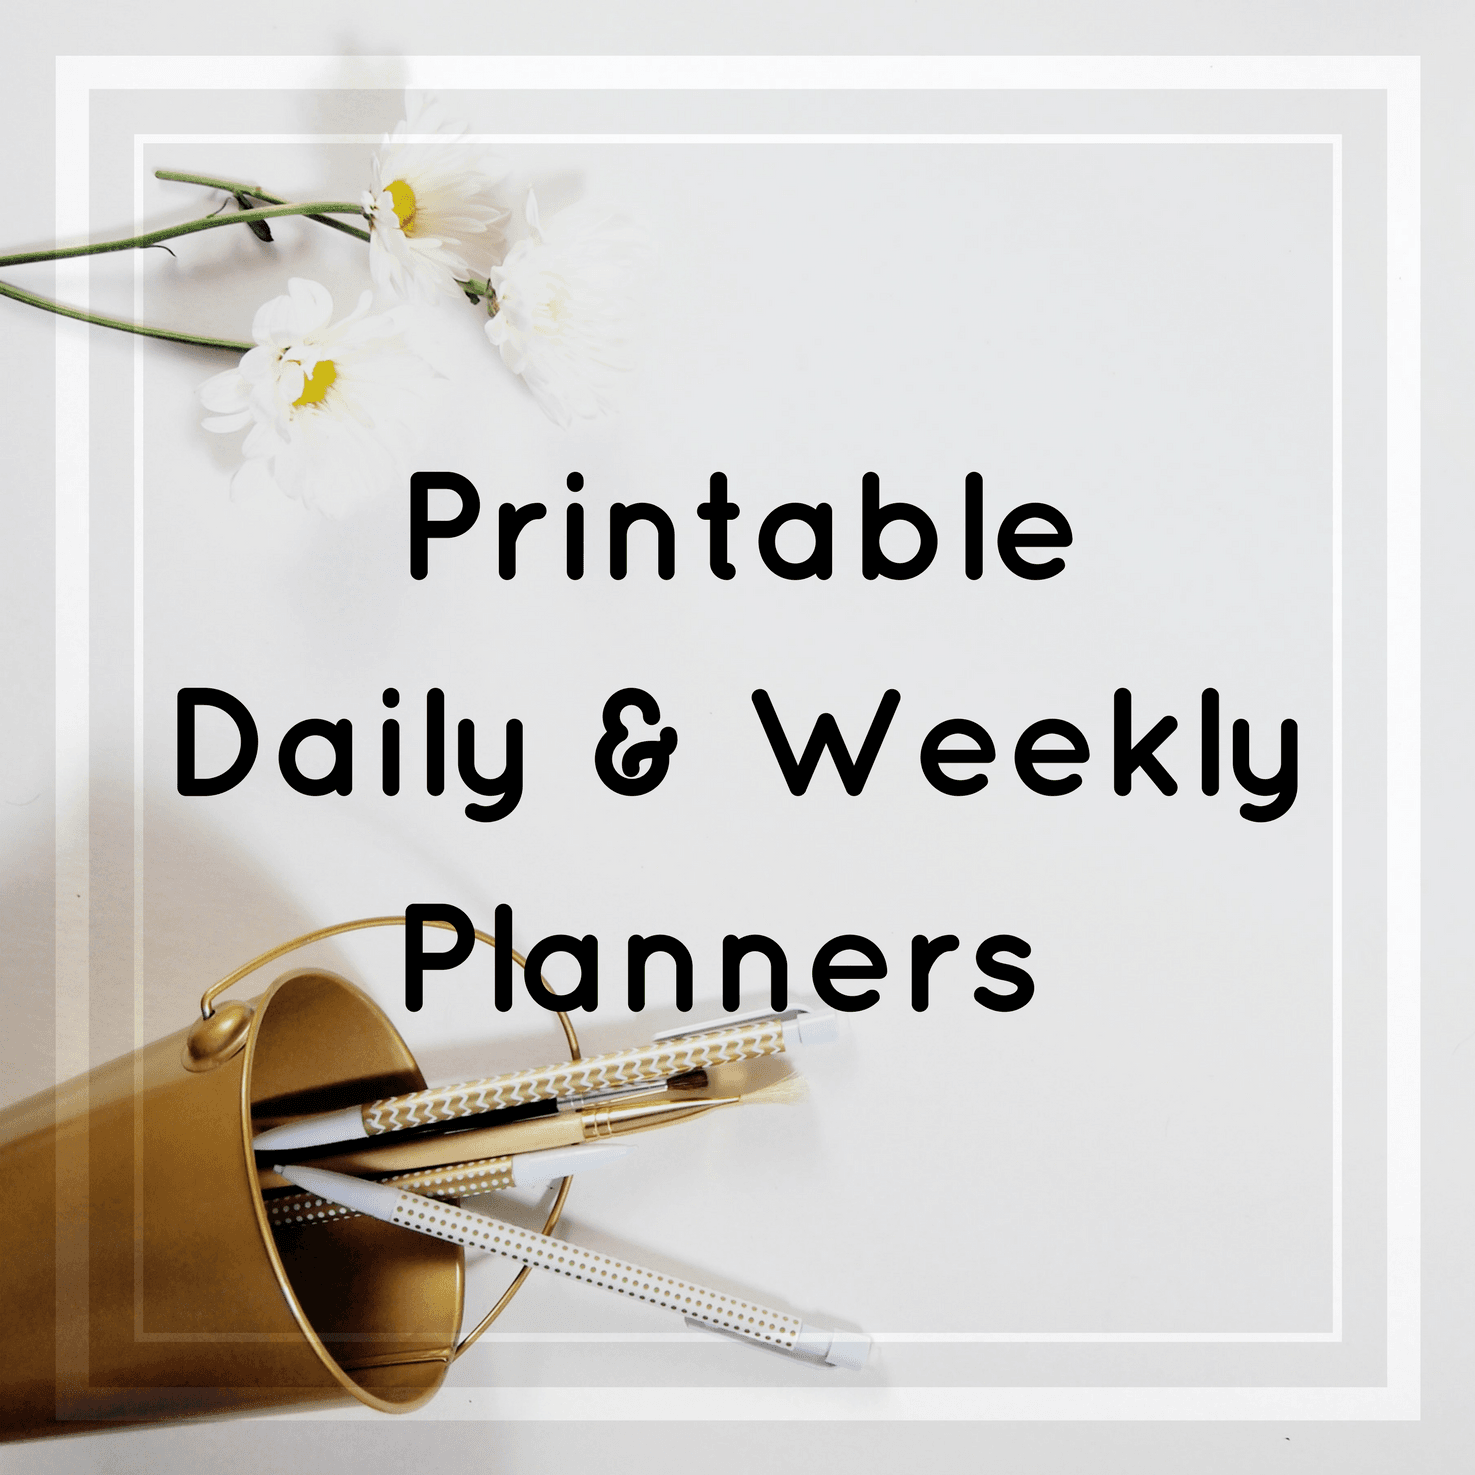 Printable Planners – Let's Do This!